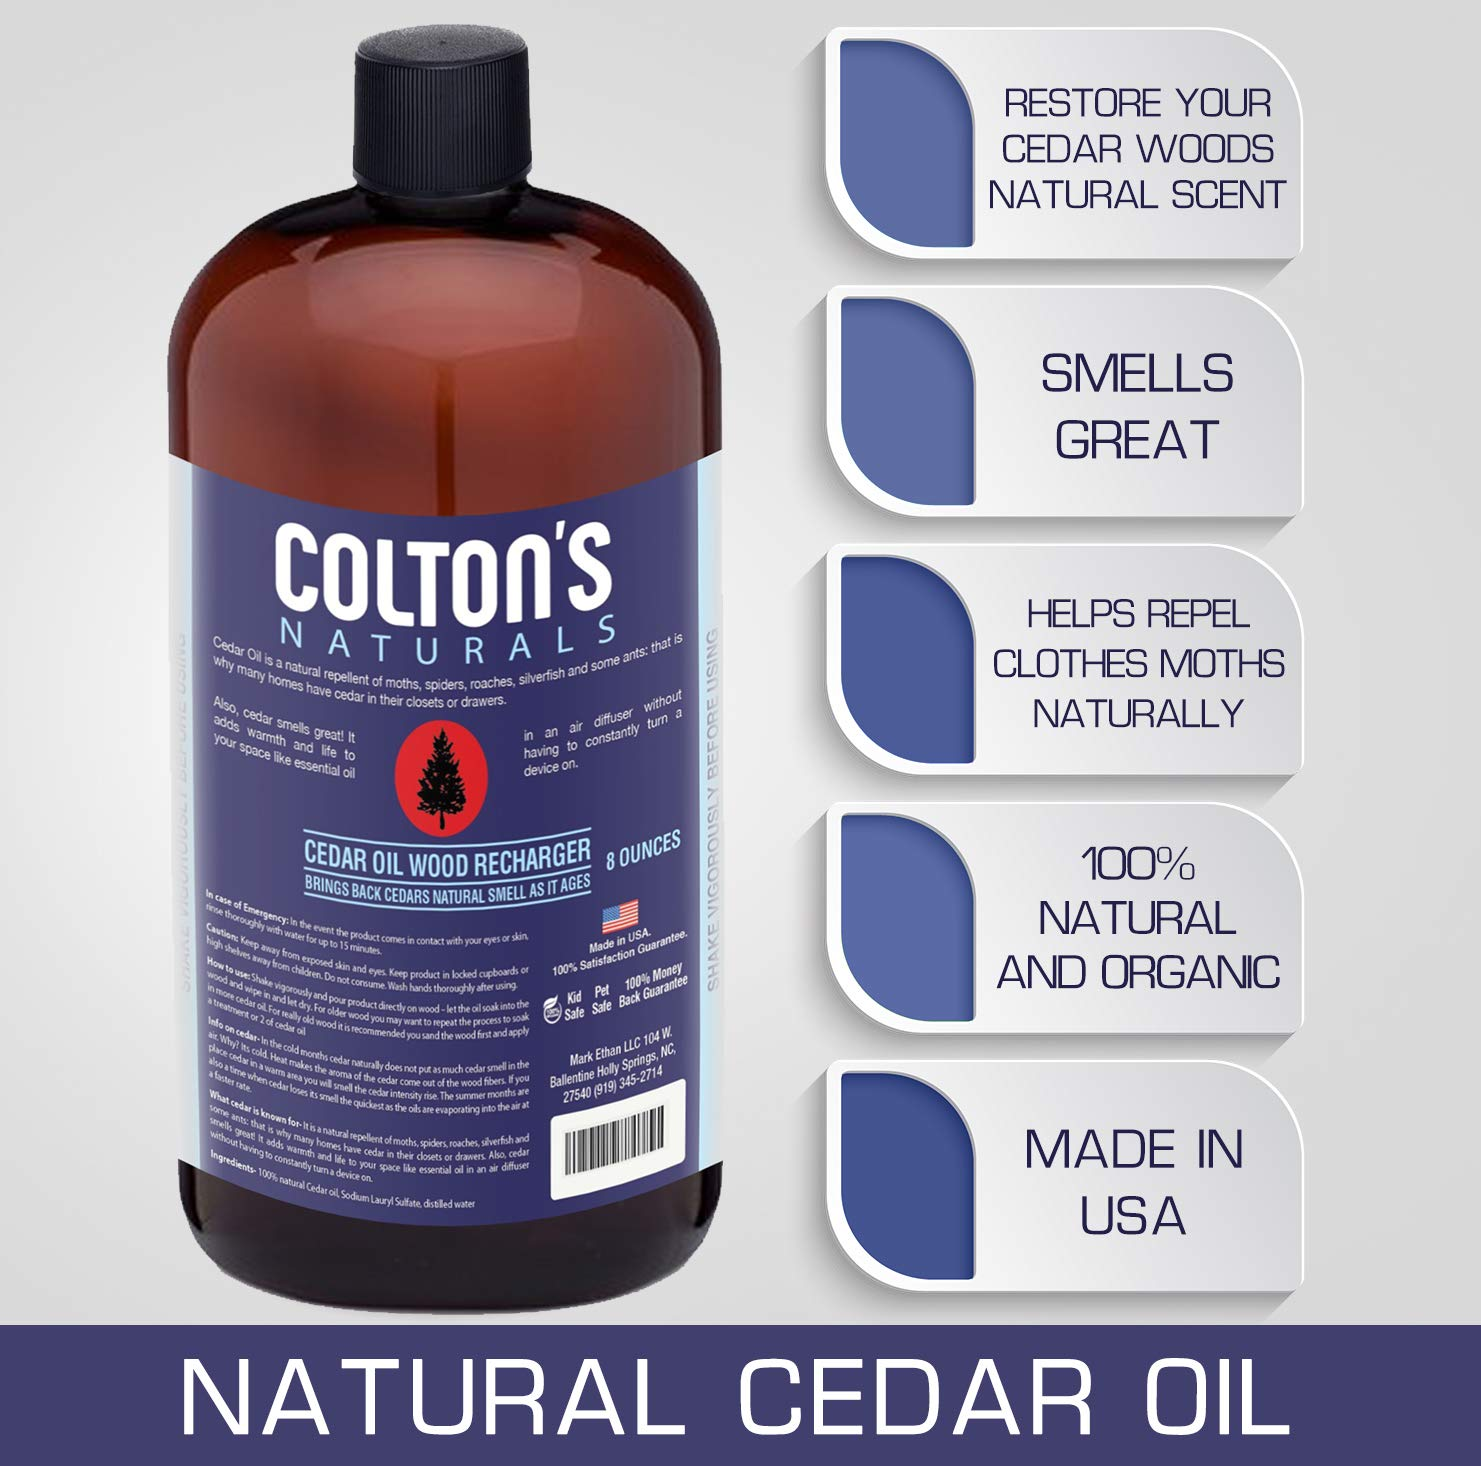 Colton's Naturals Cedar Oil Lavender Wood Replenish & Restore Original Cedar Scent (8 Ounces) by Colton's Naturals